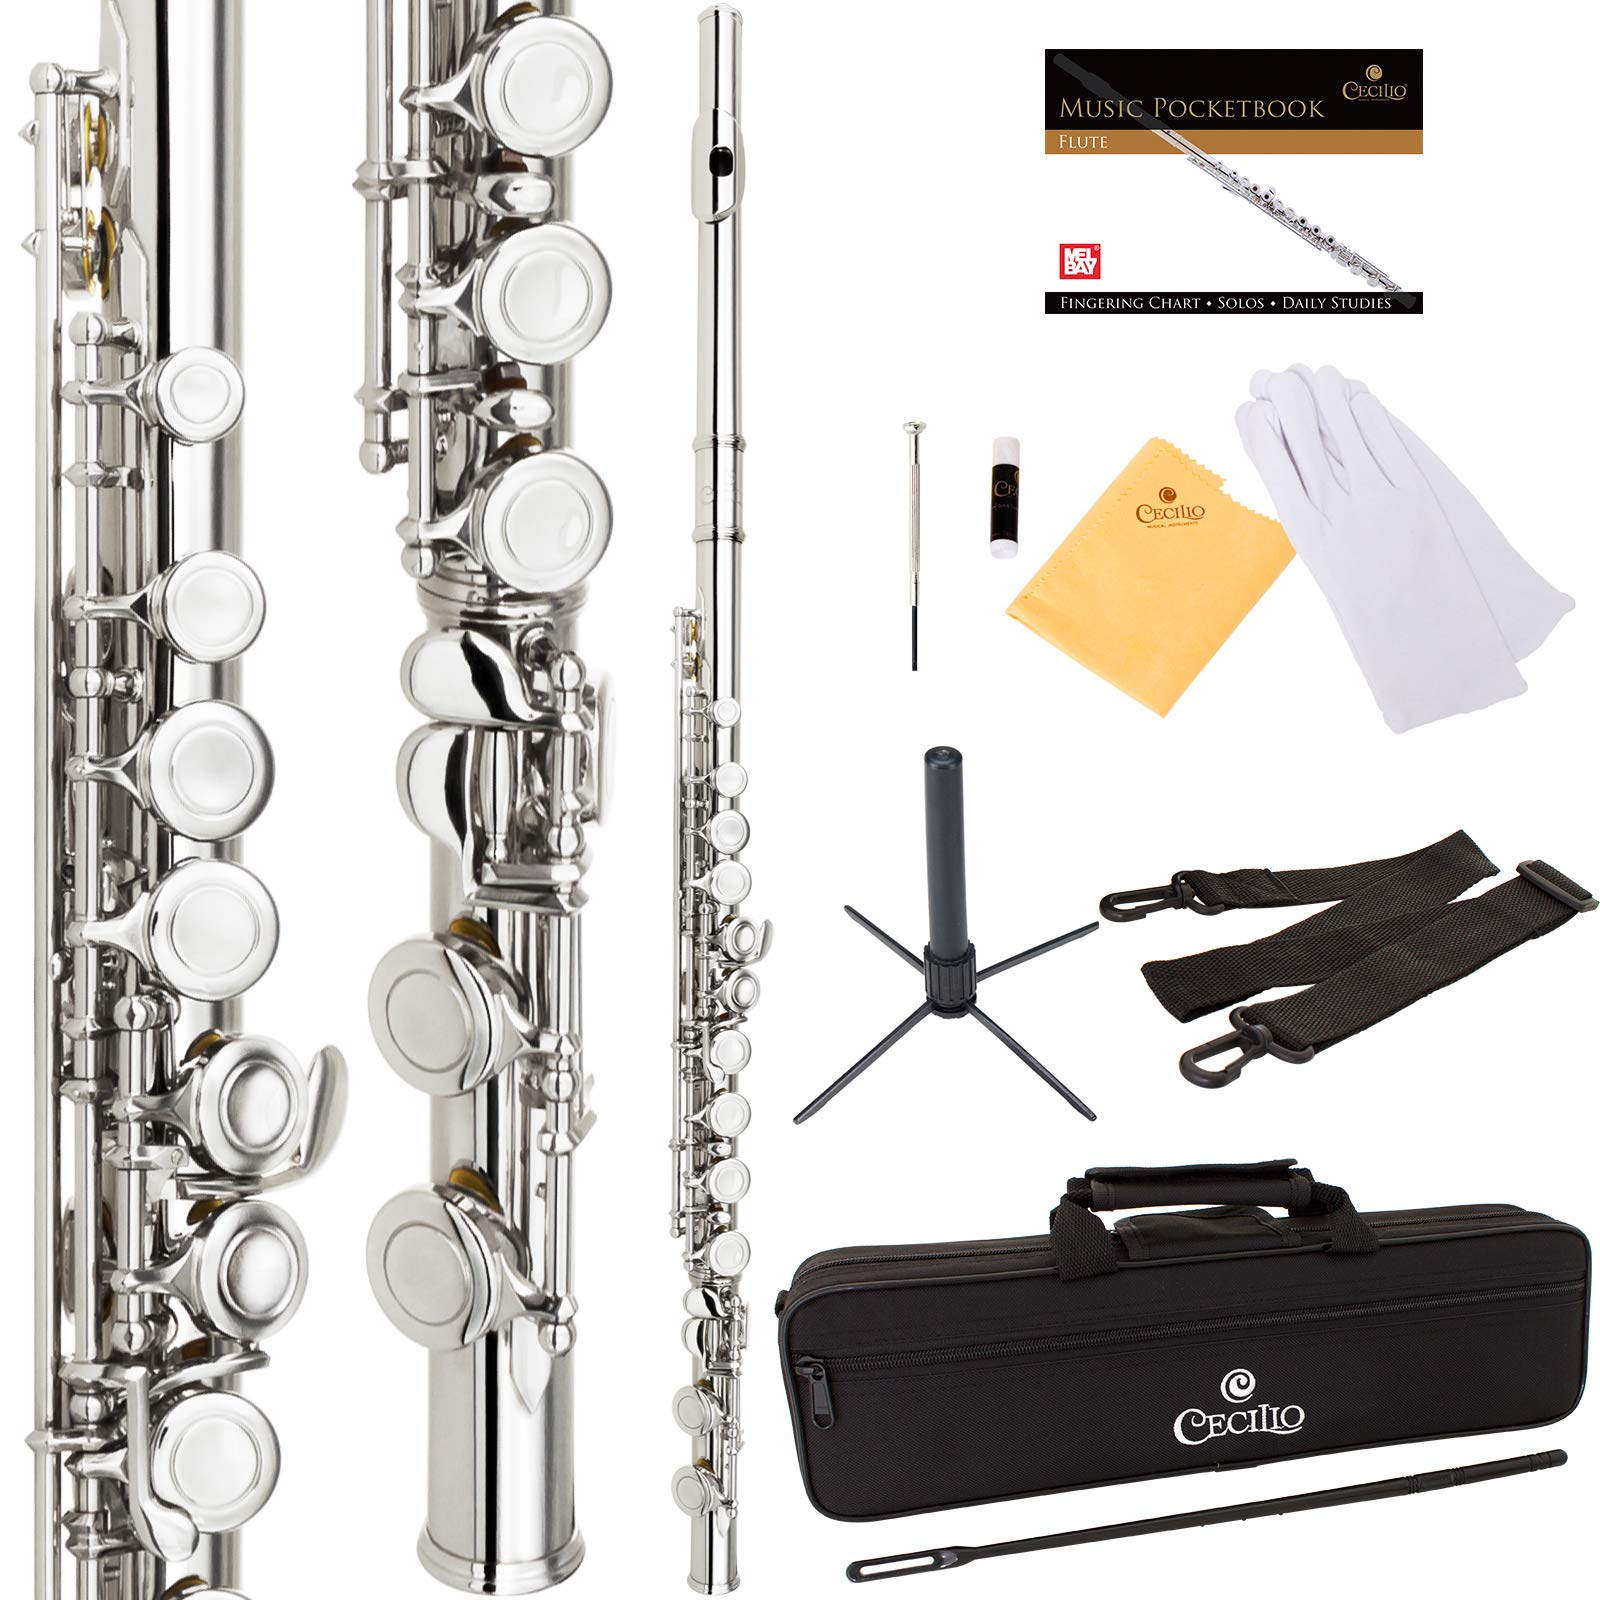 Cecilio High Grade Student C Flute Package in Silver Nickel Plated with Stand, Pocketbook, Case, Screwdriver, Joint Grease, Cleaning Cloth and Rod by Cecilio